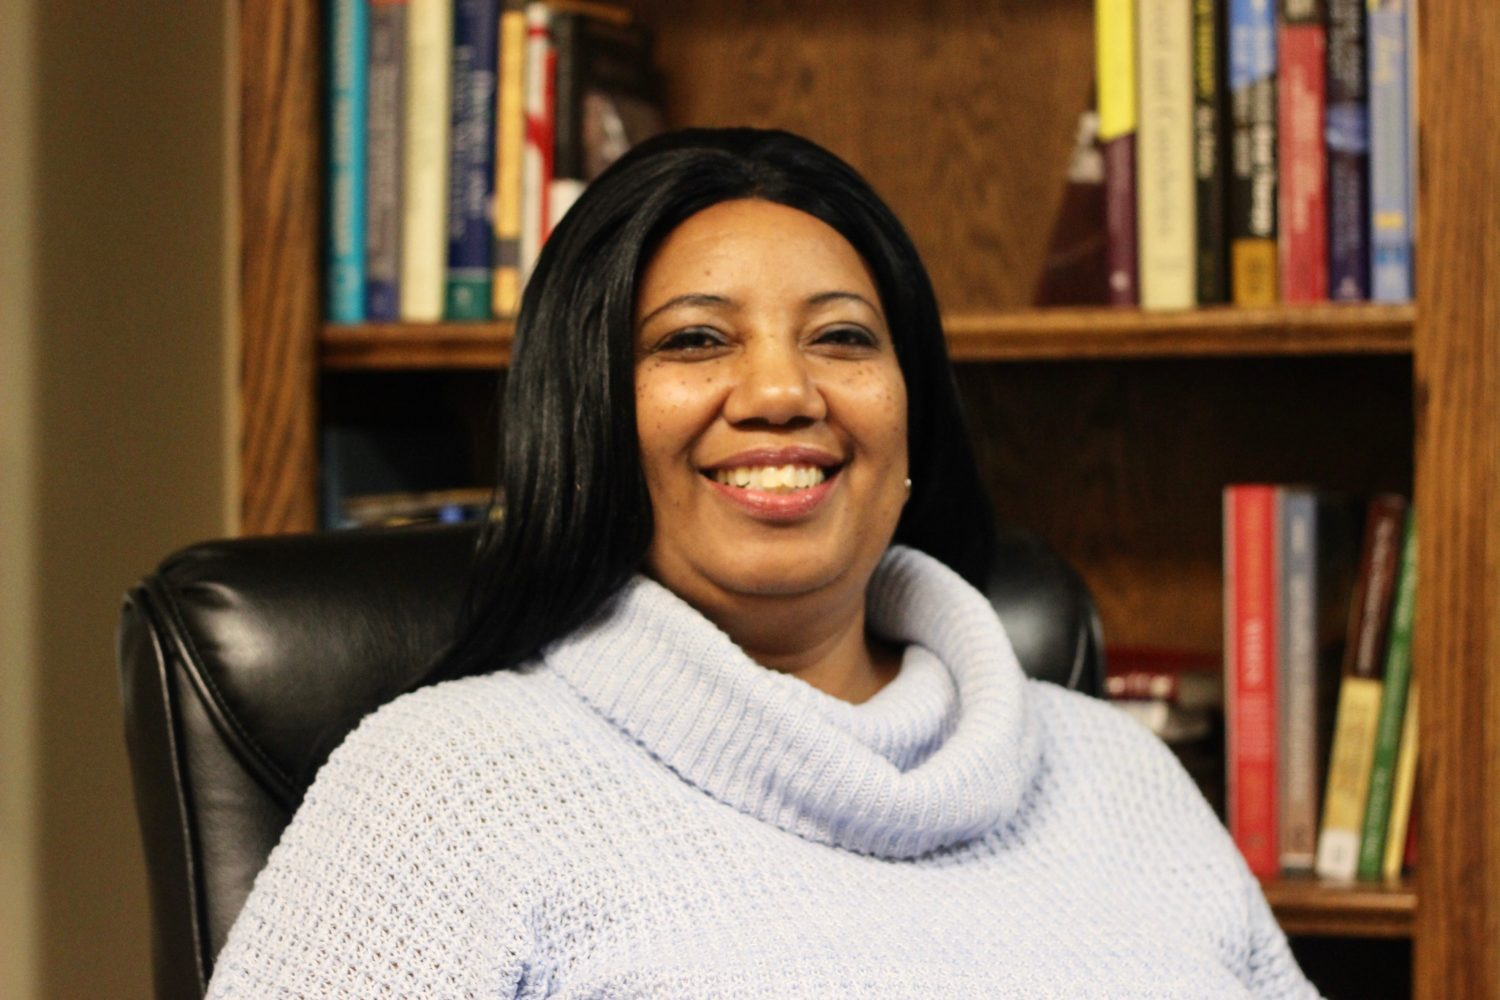 Bridgette McLaurin, LMHC, Licensed Counselor